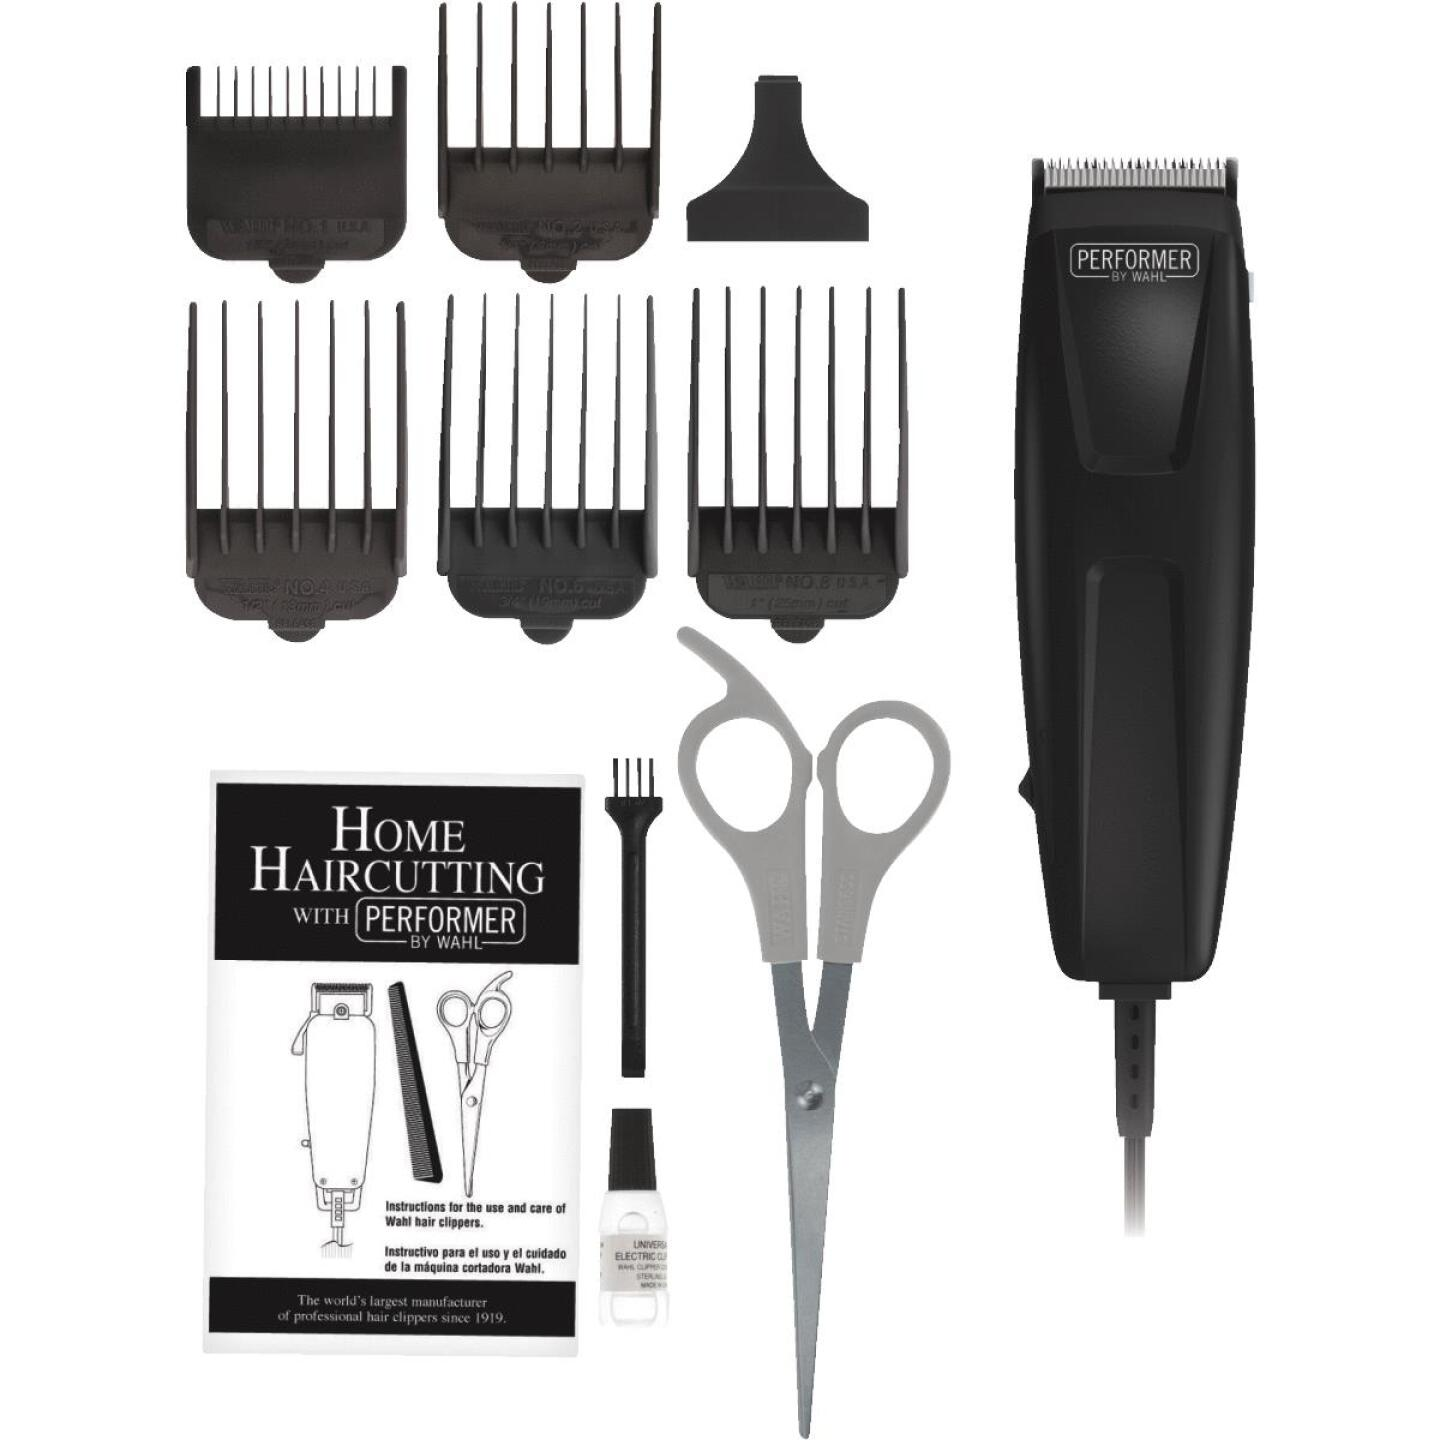 Wahl High Carbon Steel Hair Clipper Set, (10 Piece) Image 1